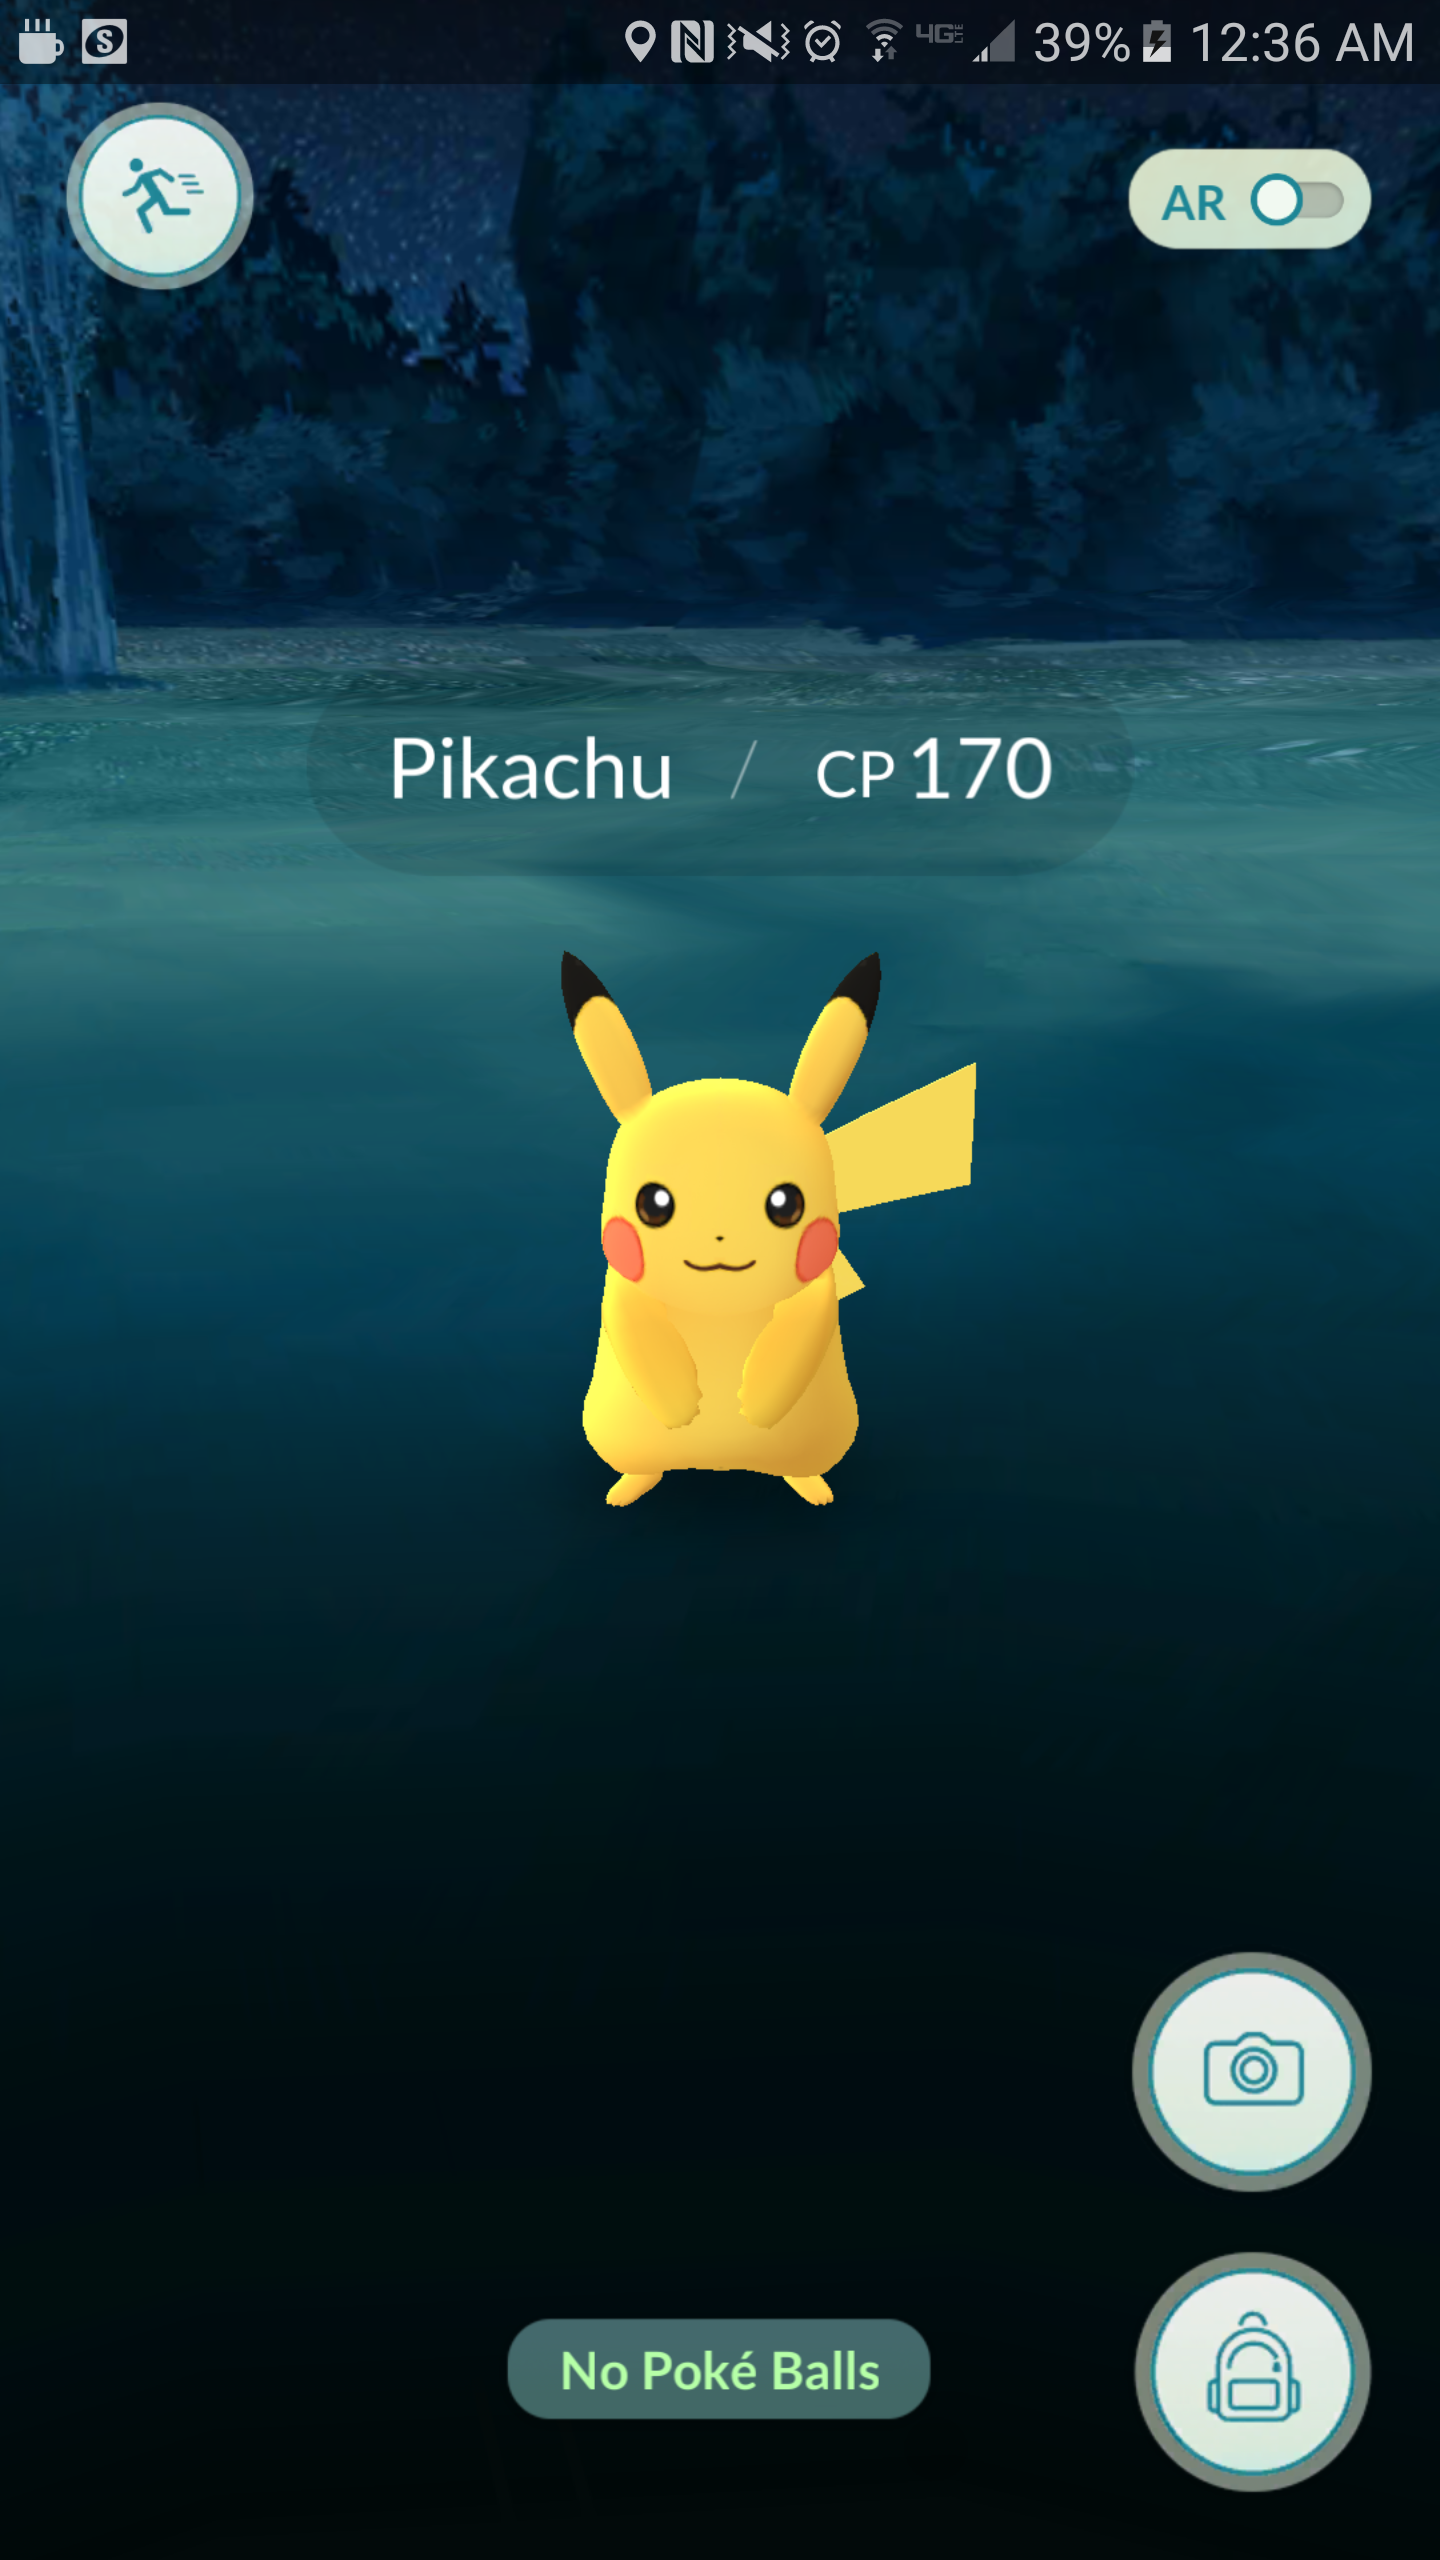 "Pokemon Go screenshot; Pikachu in capture screen, message at bottom says ""No Poke Balls"""